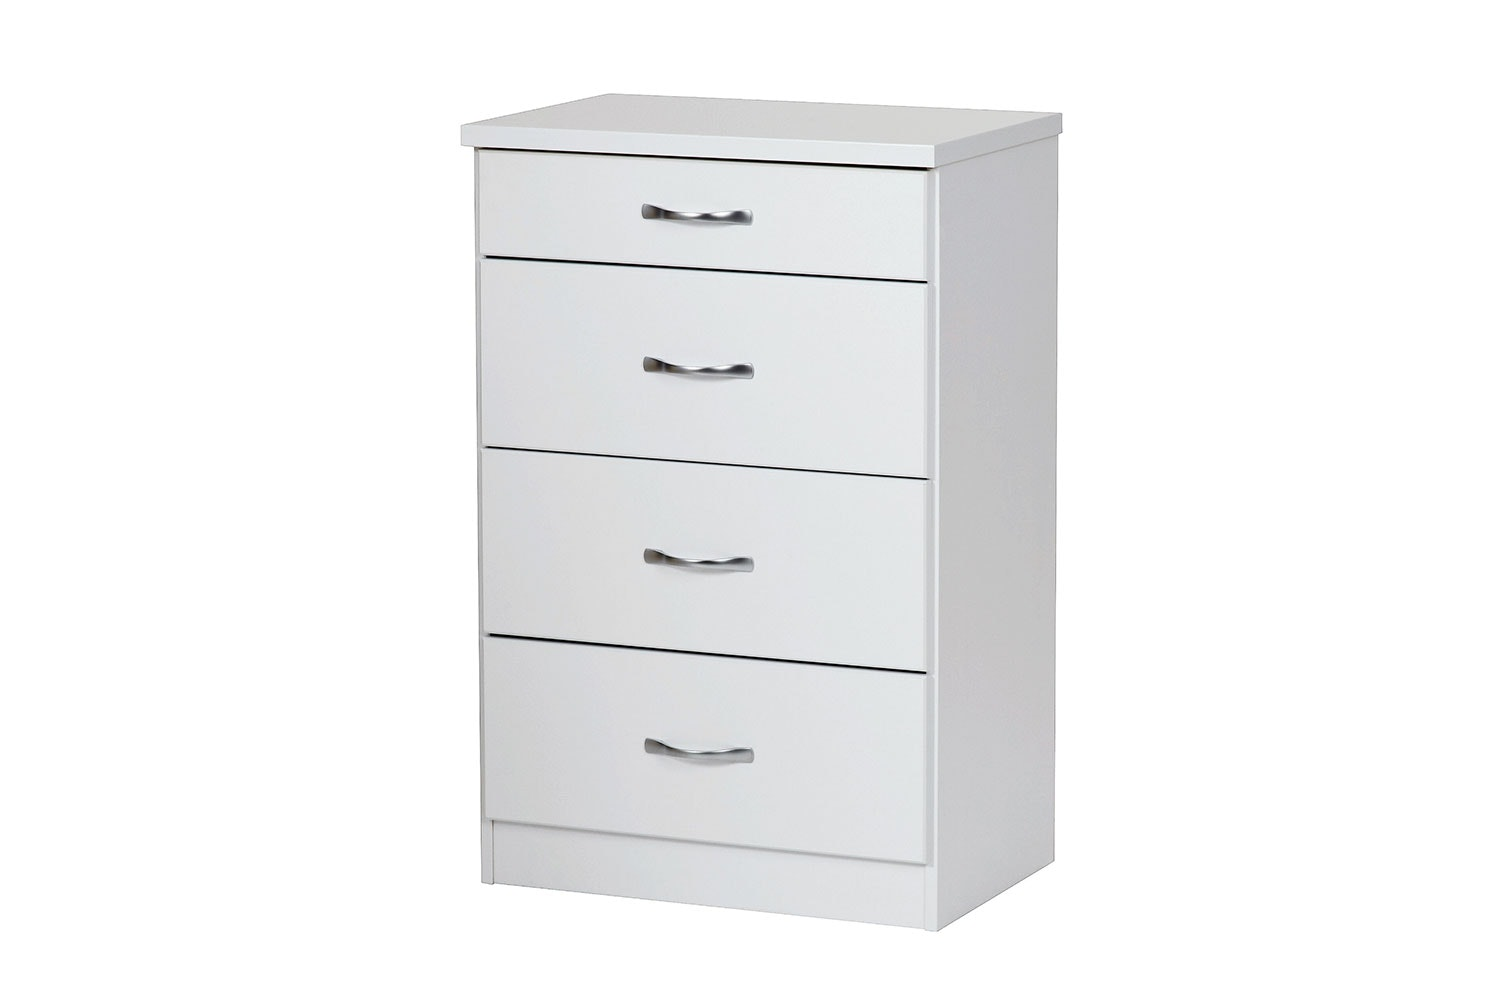 Dominic 4 Drawer Chest by Compac Furniture